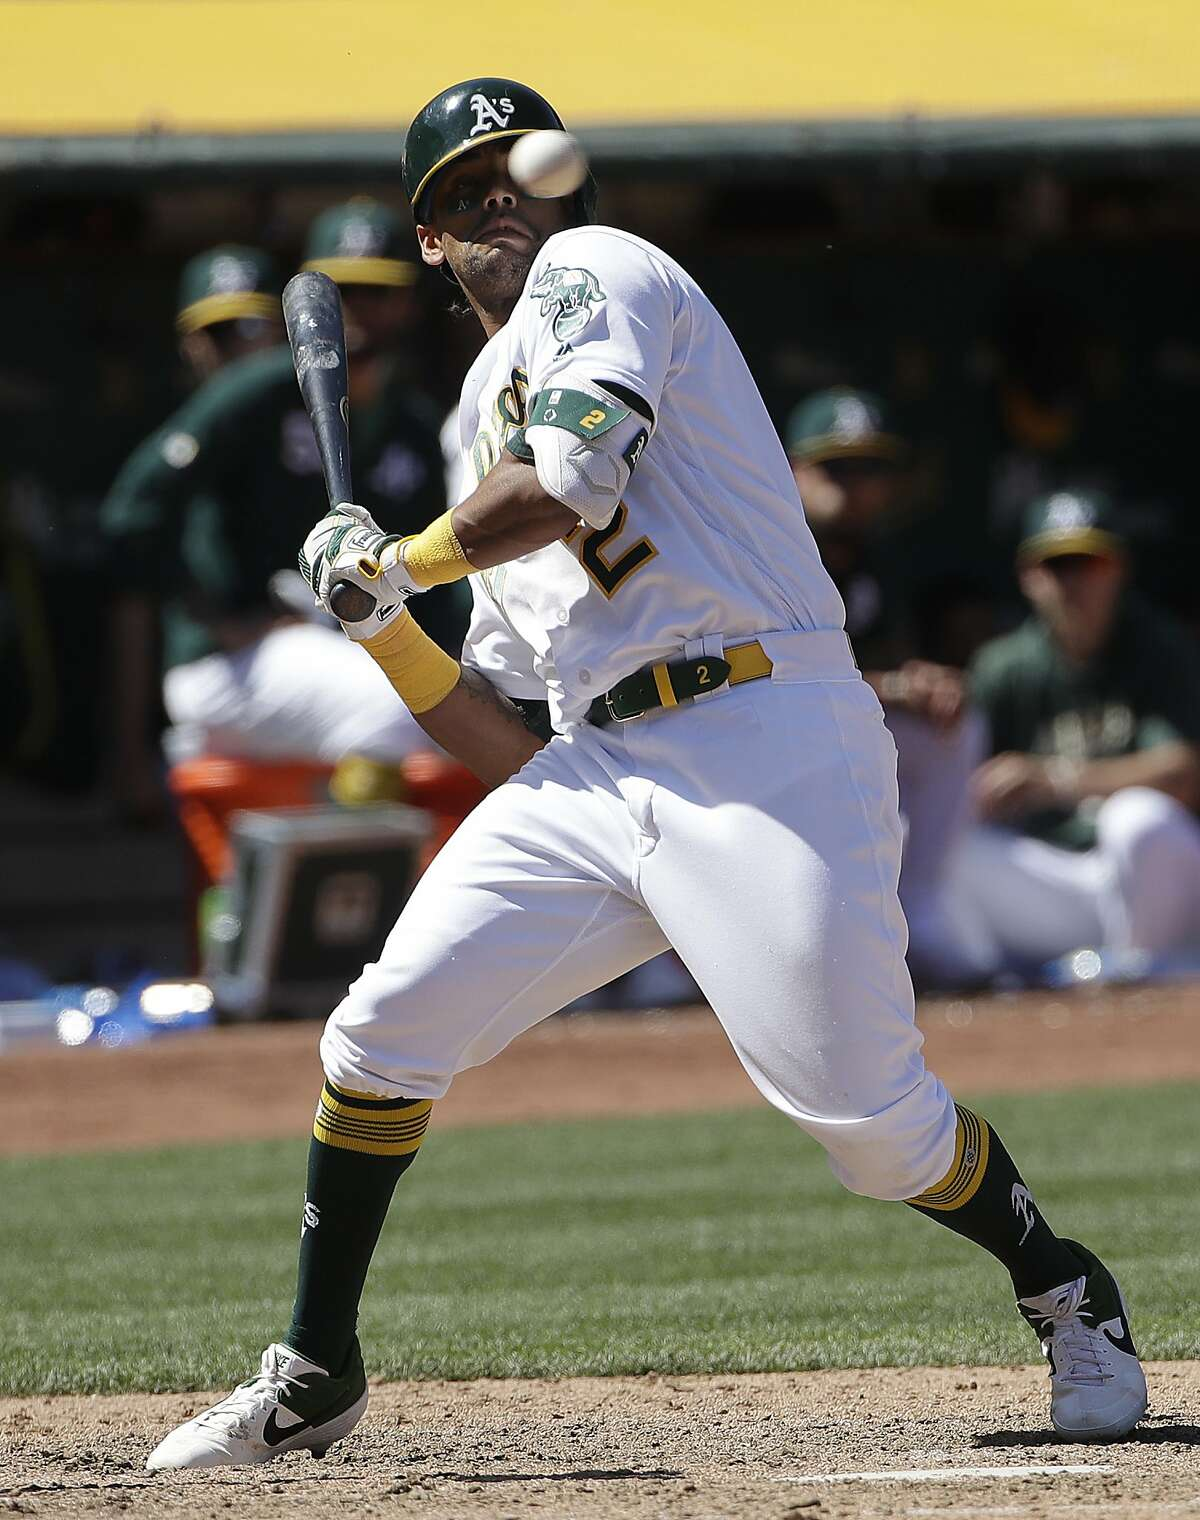 Oakland Athletics' Khris Davis leans back from a pitch against the Texas Rangers during the seventh inning of a baseball game in Oakland, Calif., Wednesday, April 24, 2019. (AP Photo/Jeff Chiu)